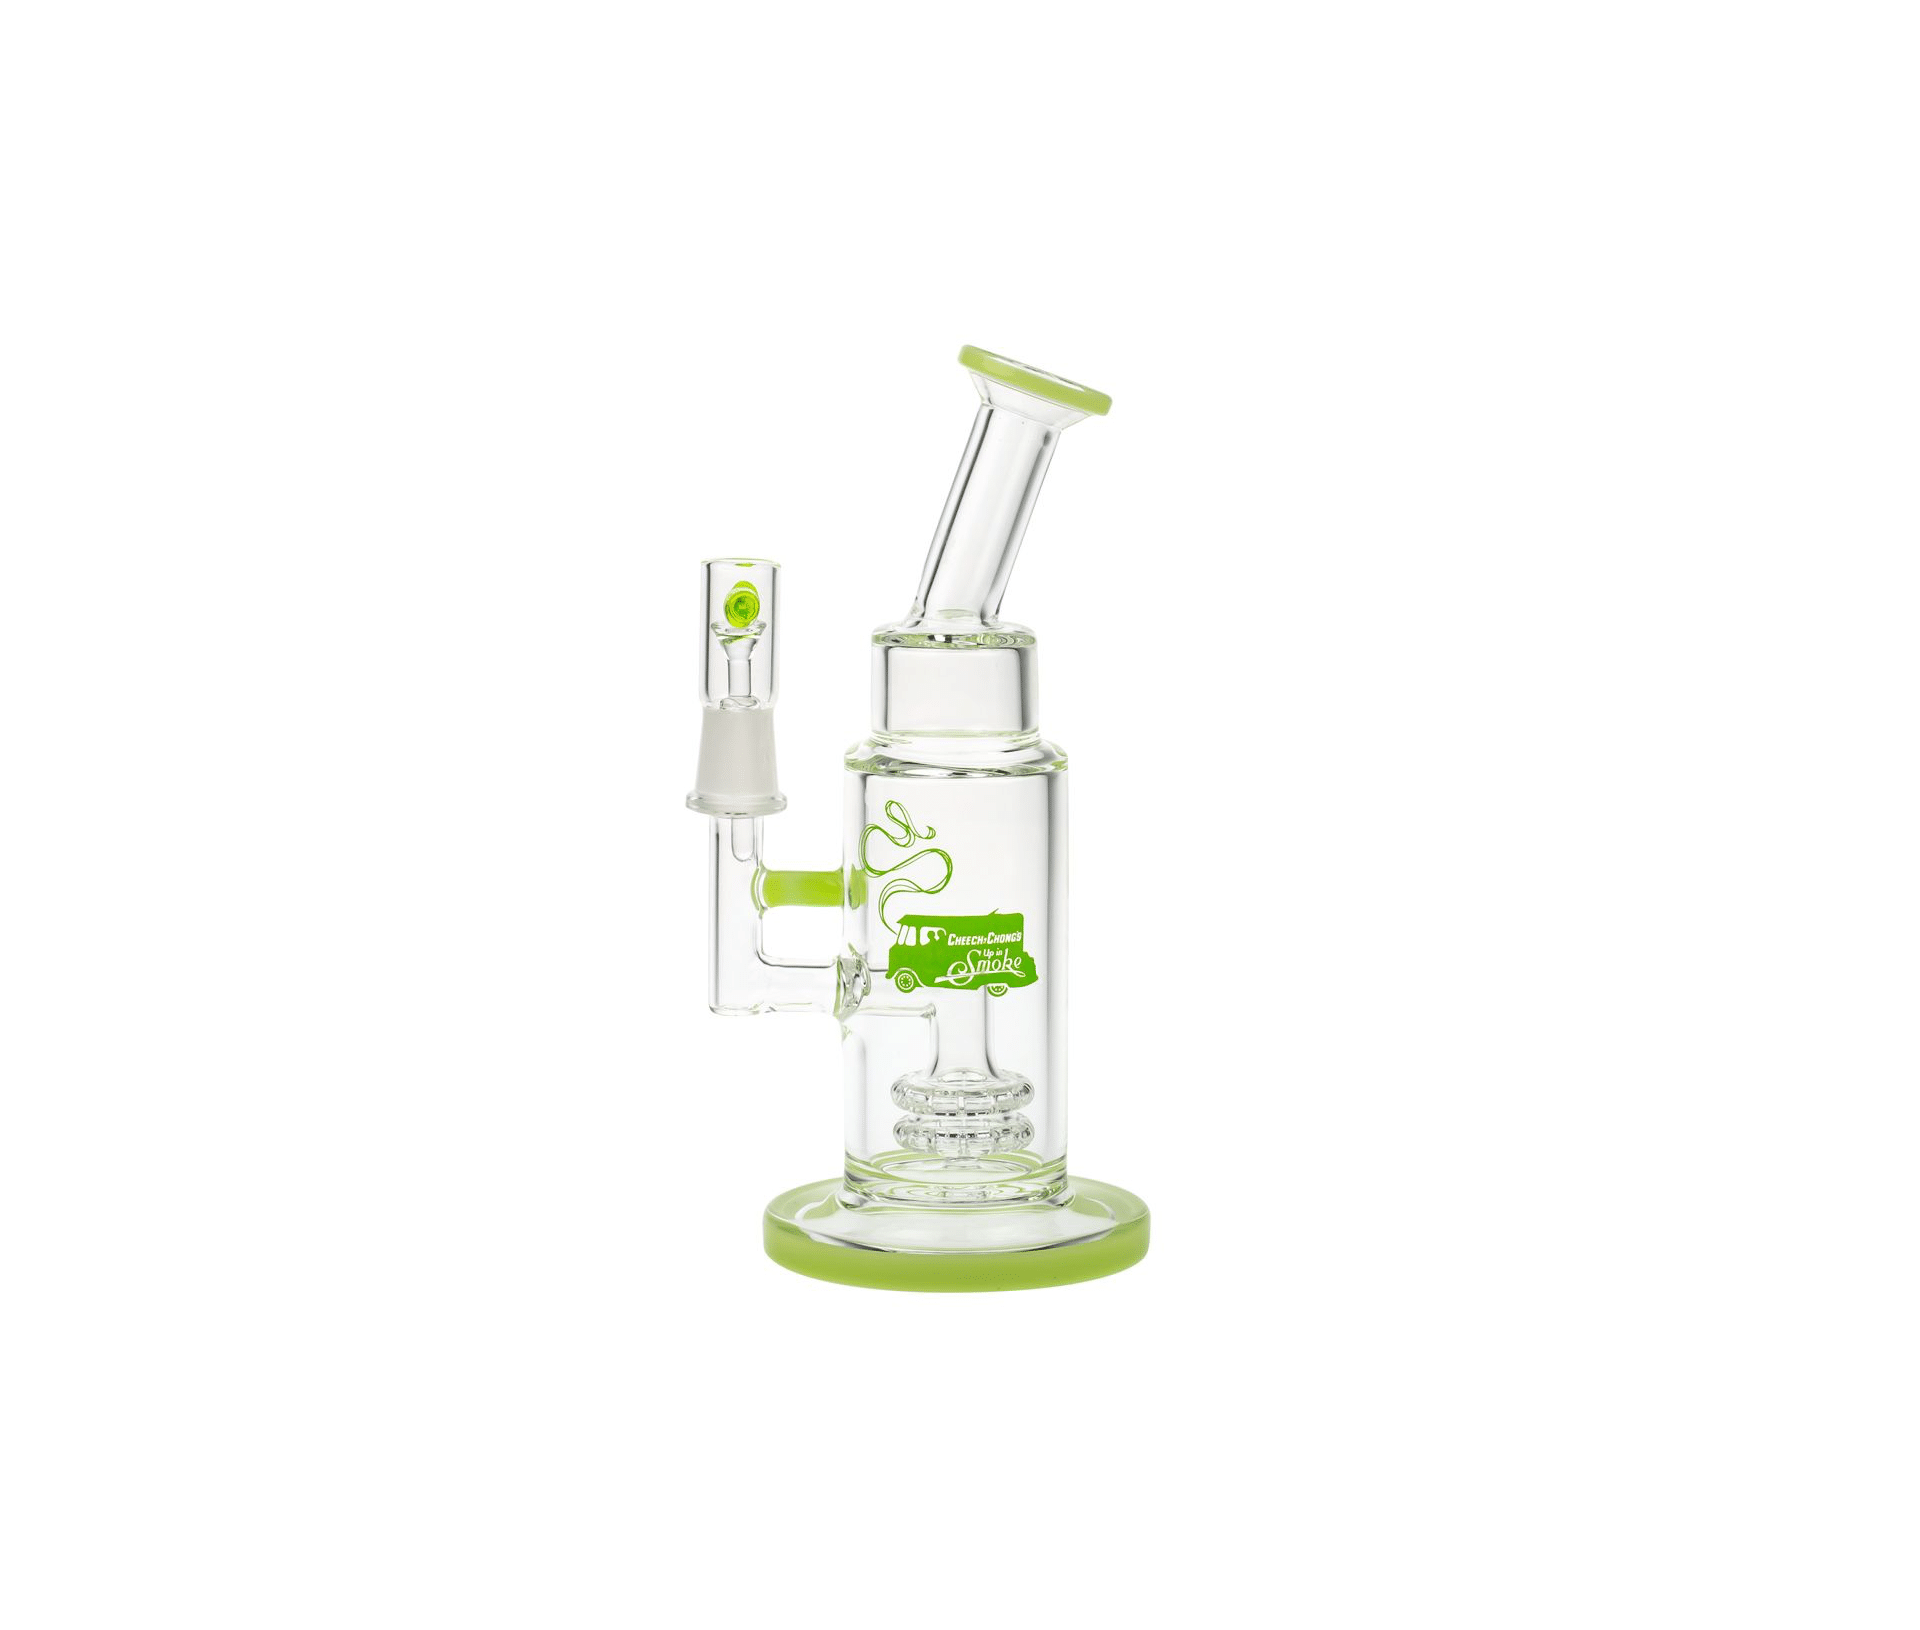 Cheech & Chong's Anthony Vapor Bubbler